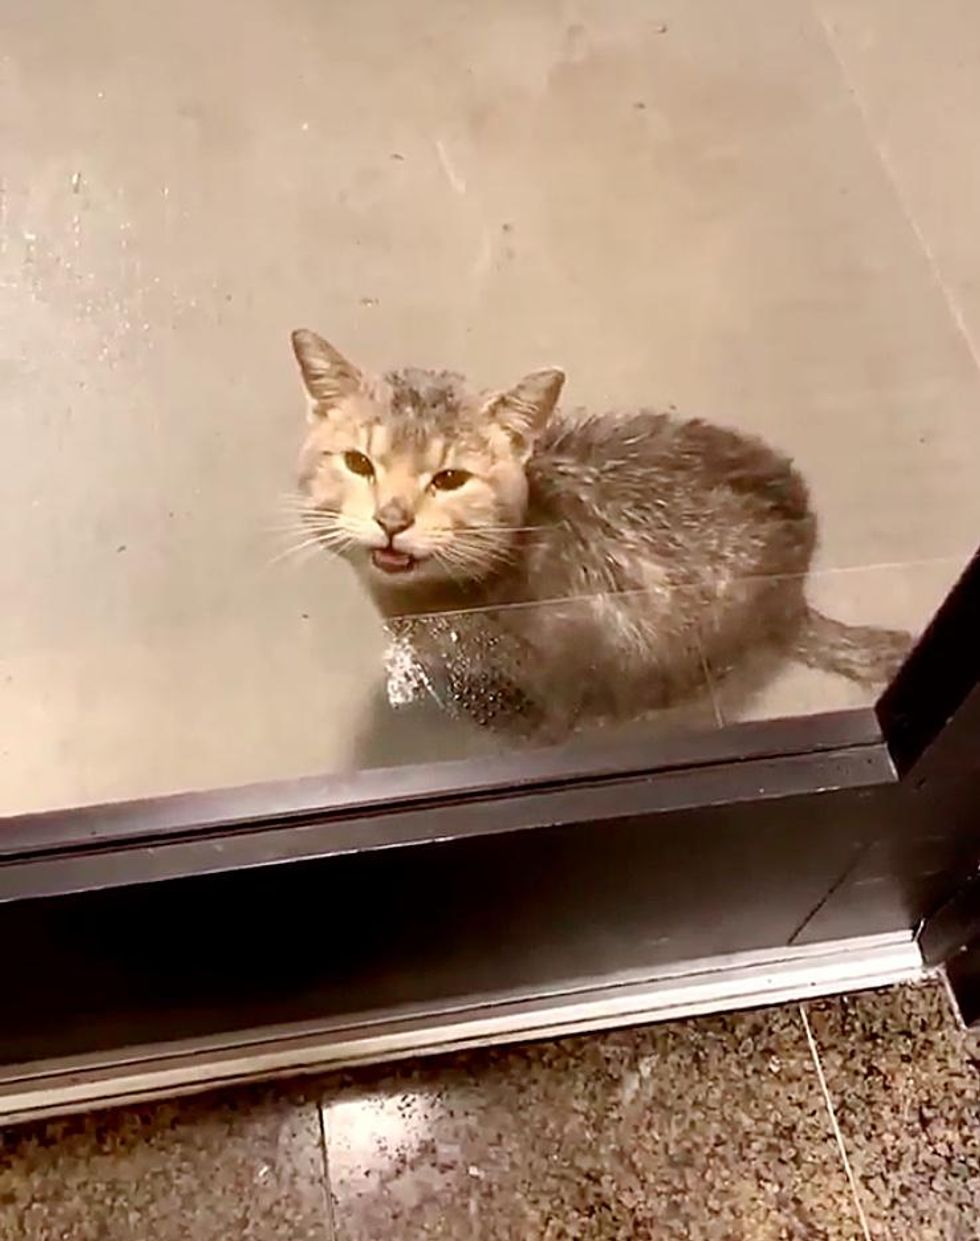 Cat Showed Up on the Door of Workplace and Asked to Be Let Inside from the Rain